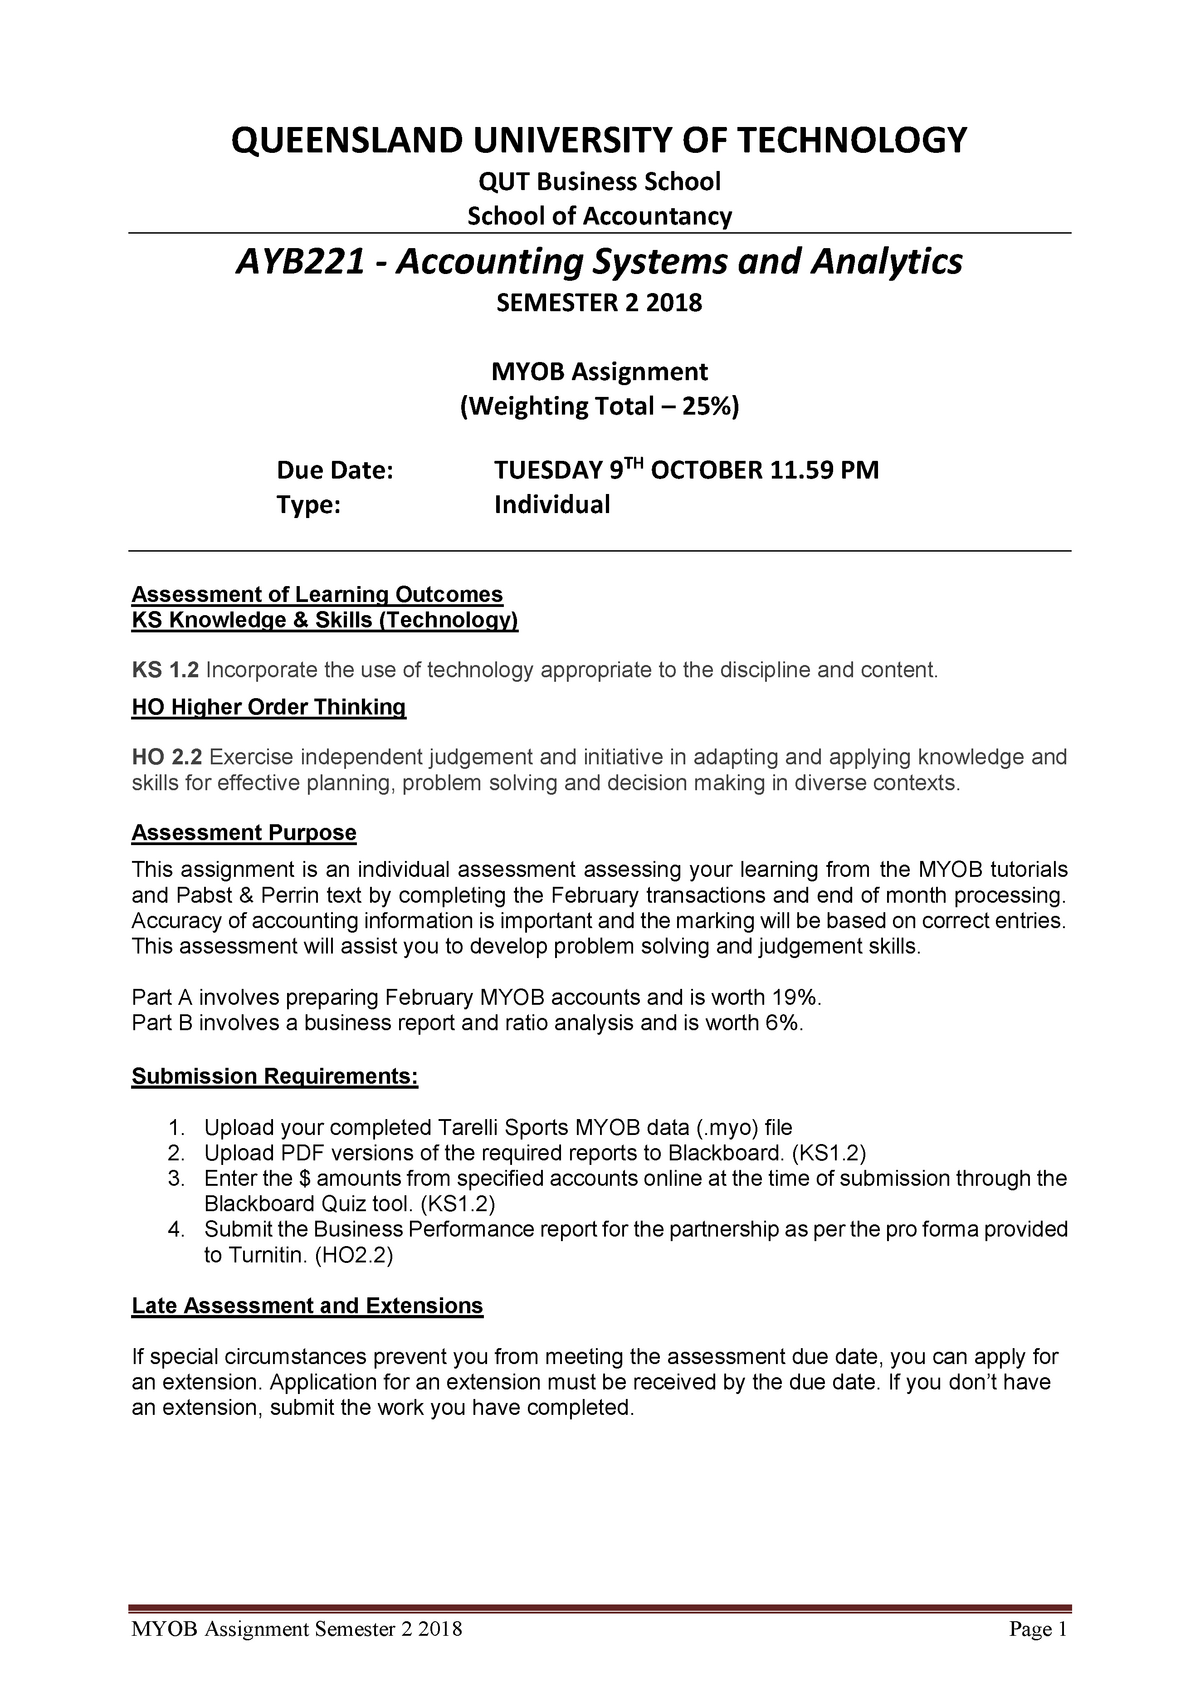 MYOB Assignment - Sem 2 2018 - AYB221: Accounting Systems and